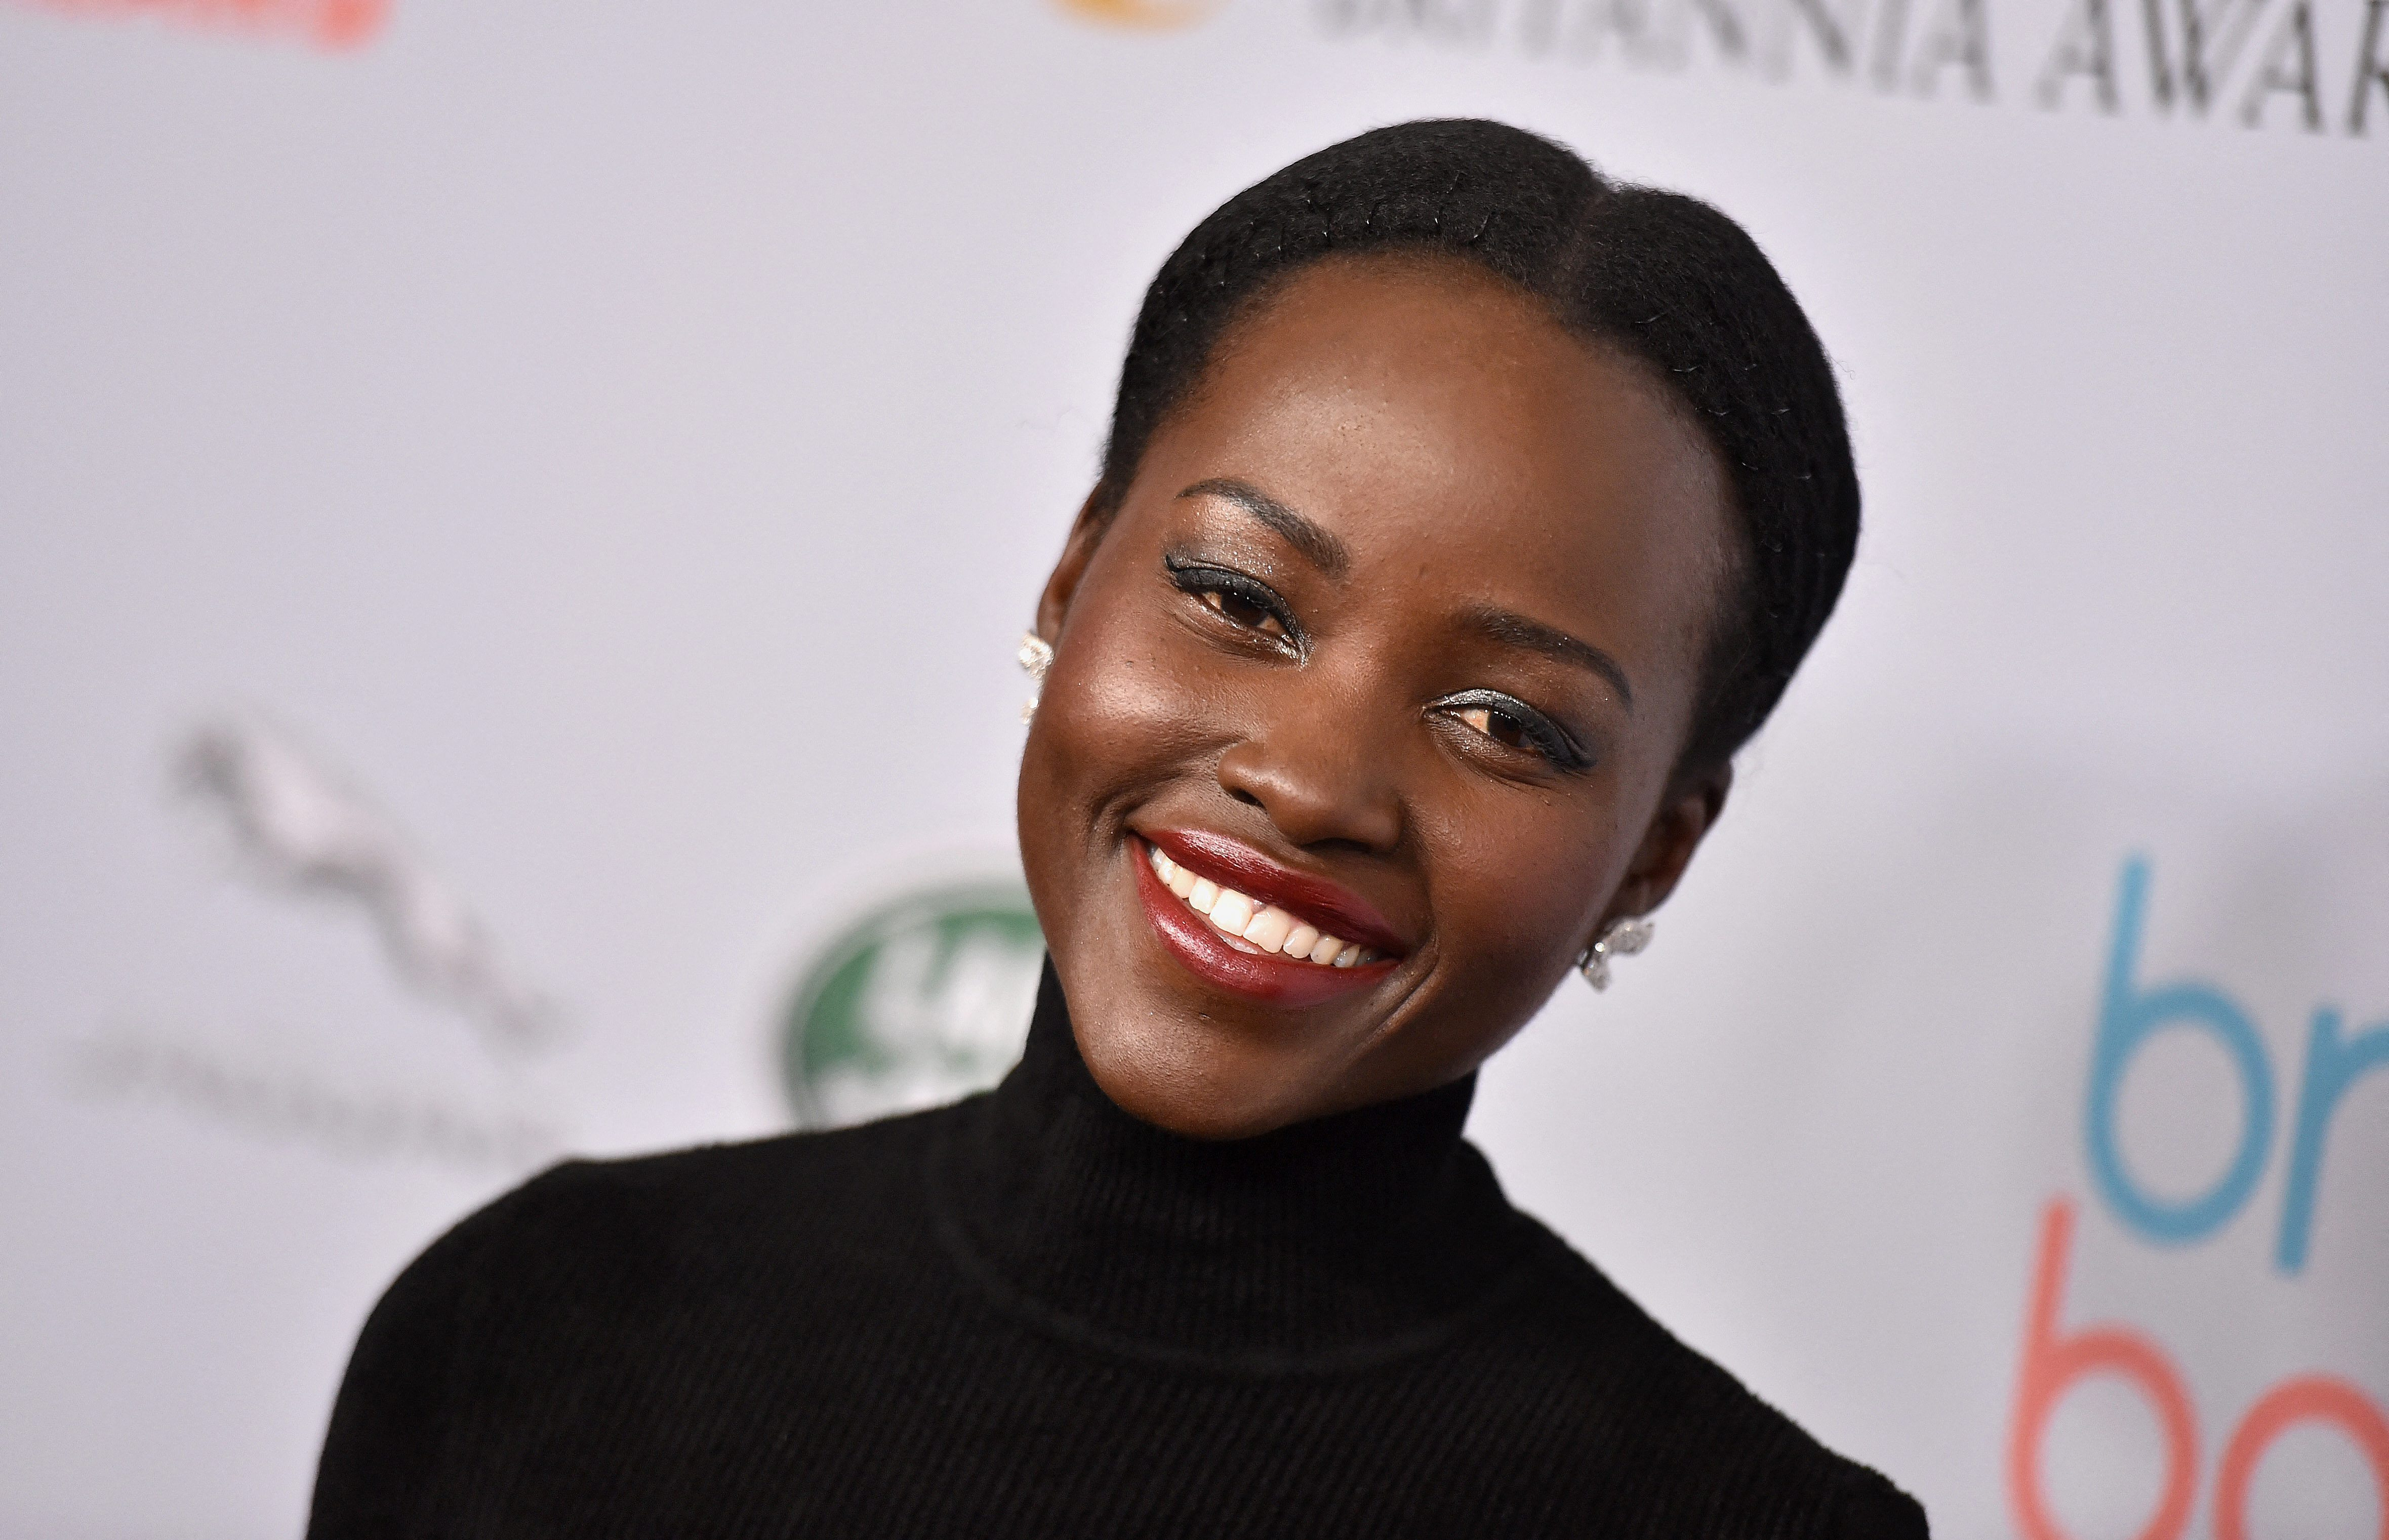 Lupita Nyong O Celebrates Her Brother S Wedding Through Facetime Amid Covid 19 Pandemic Etcanada Com